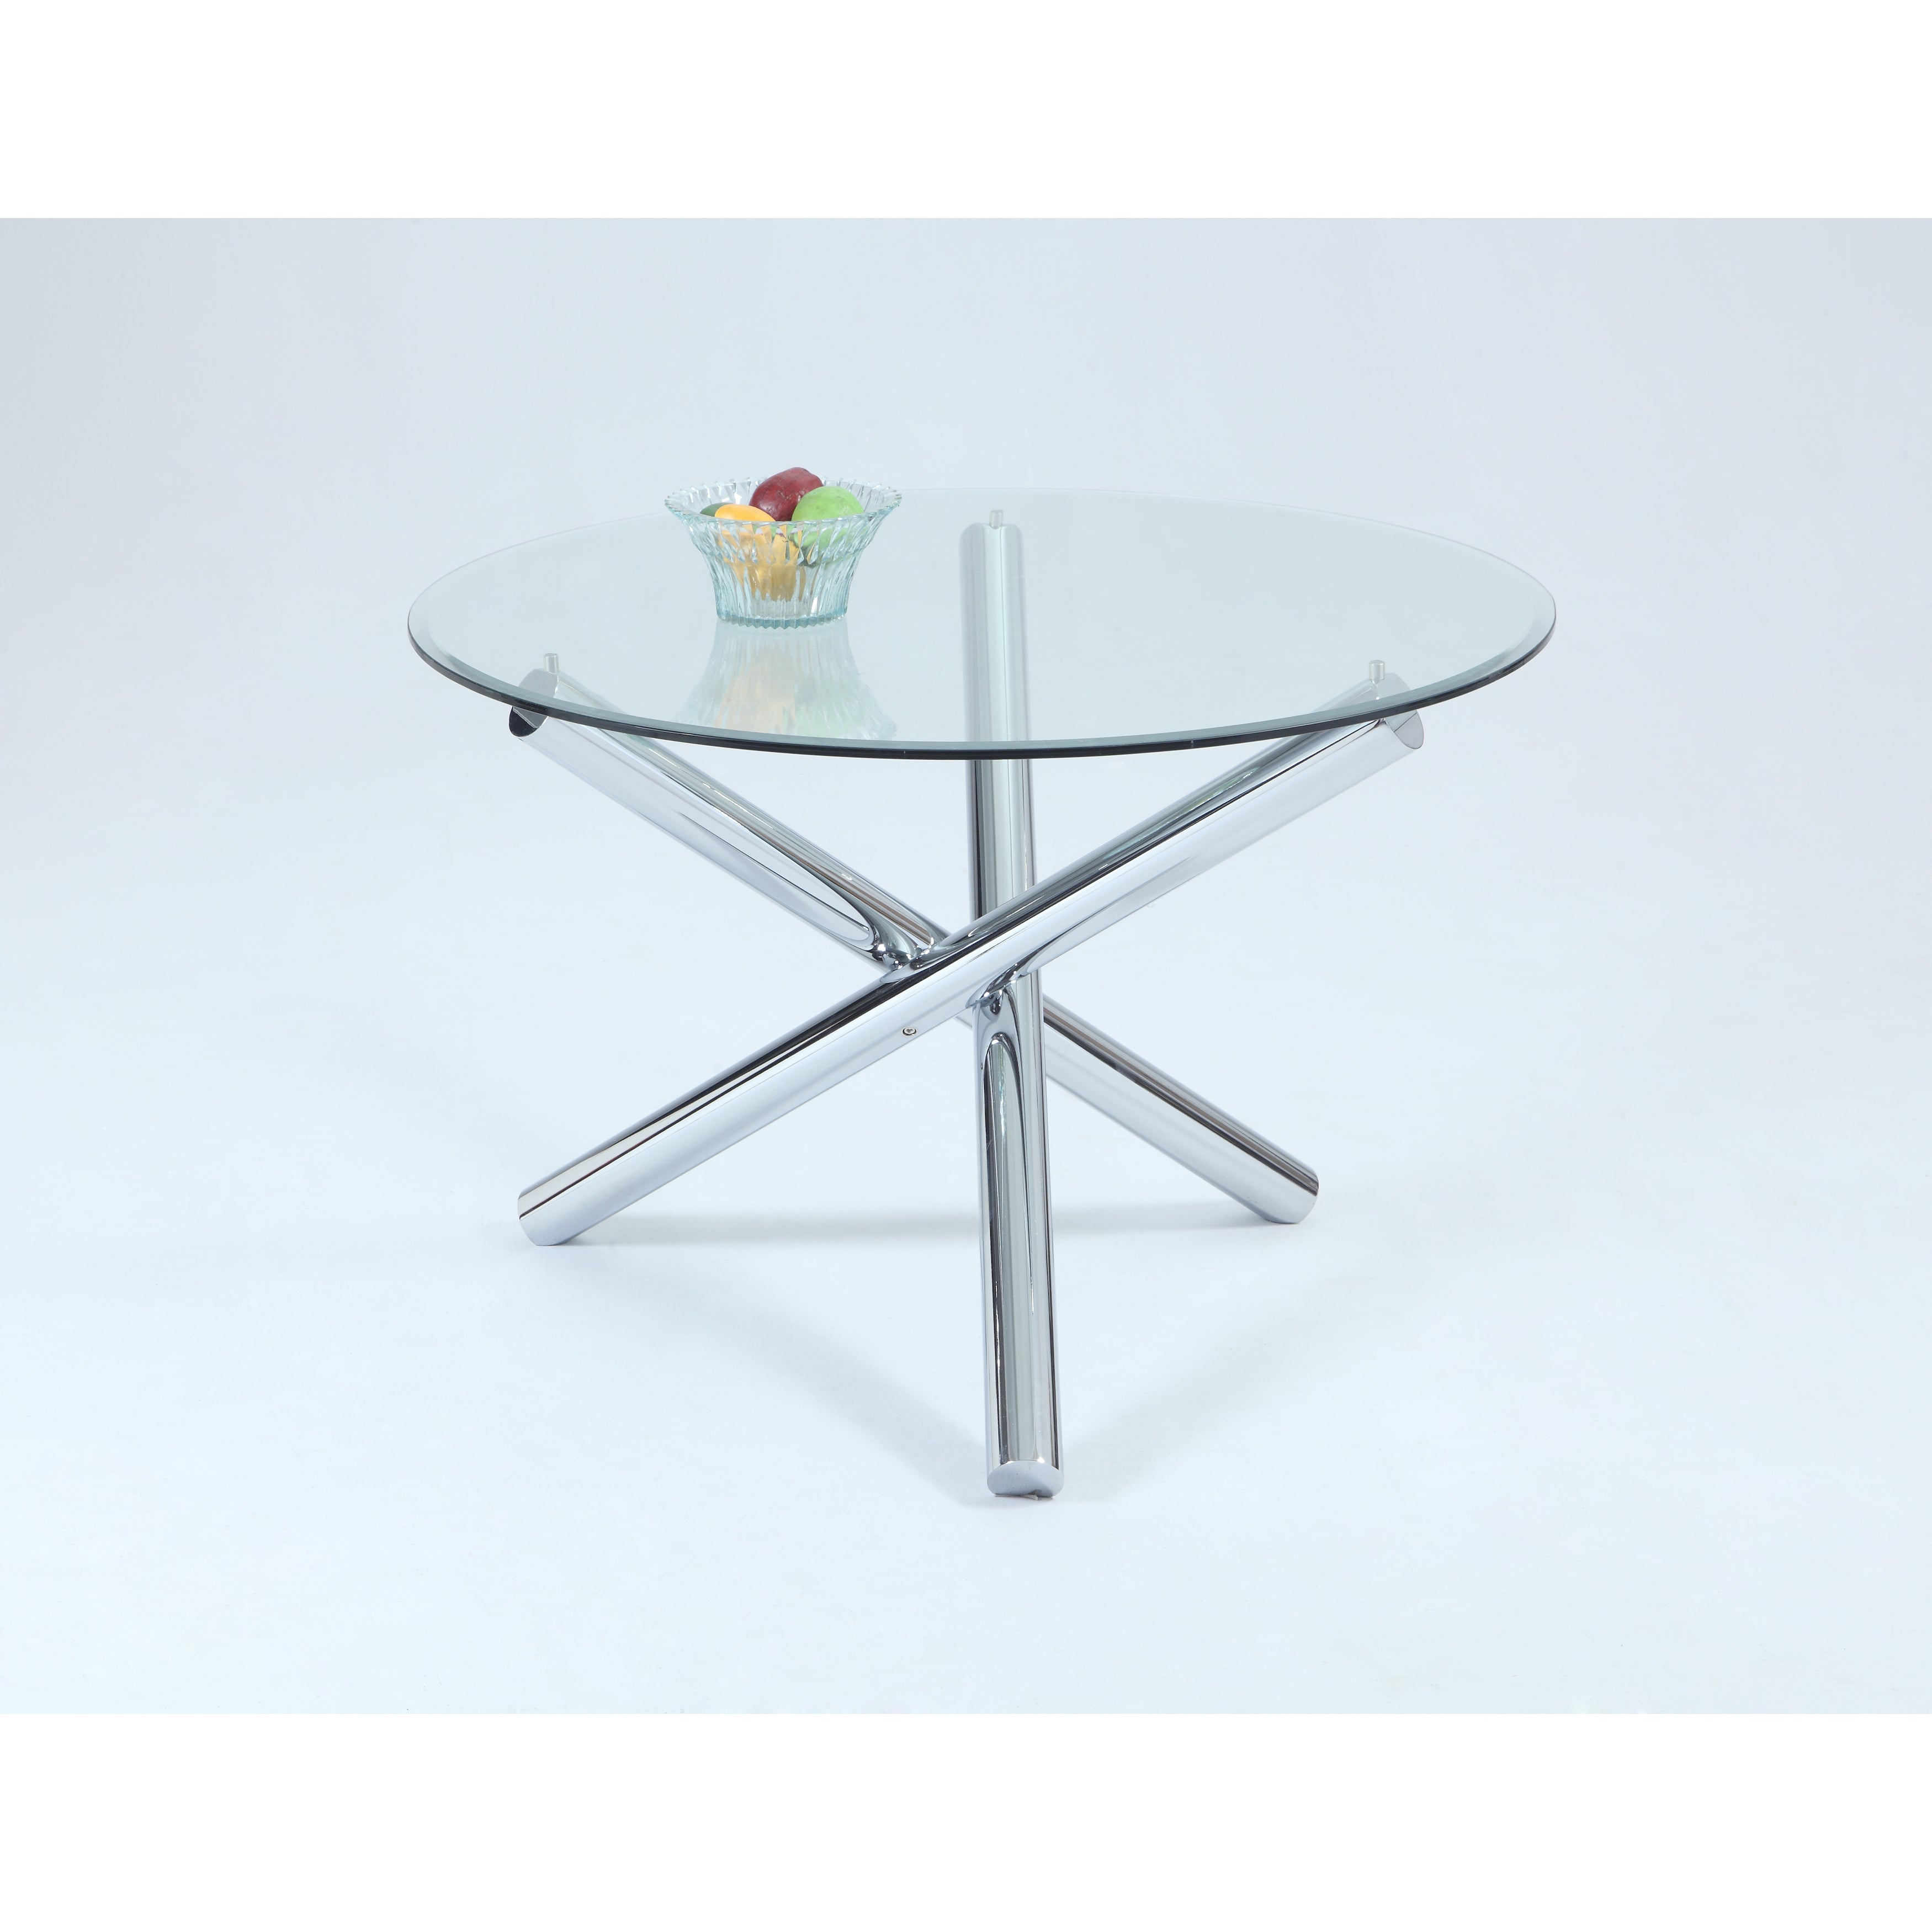 Shop Christopher Knight Home Leah Round Dining Table - Free Shipping ...